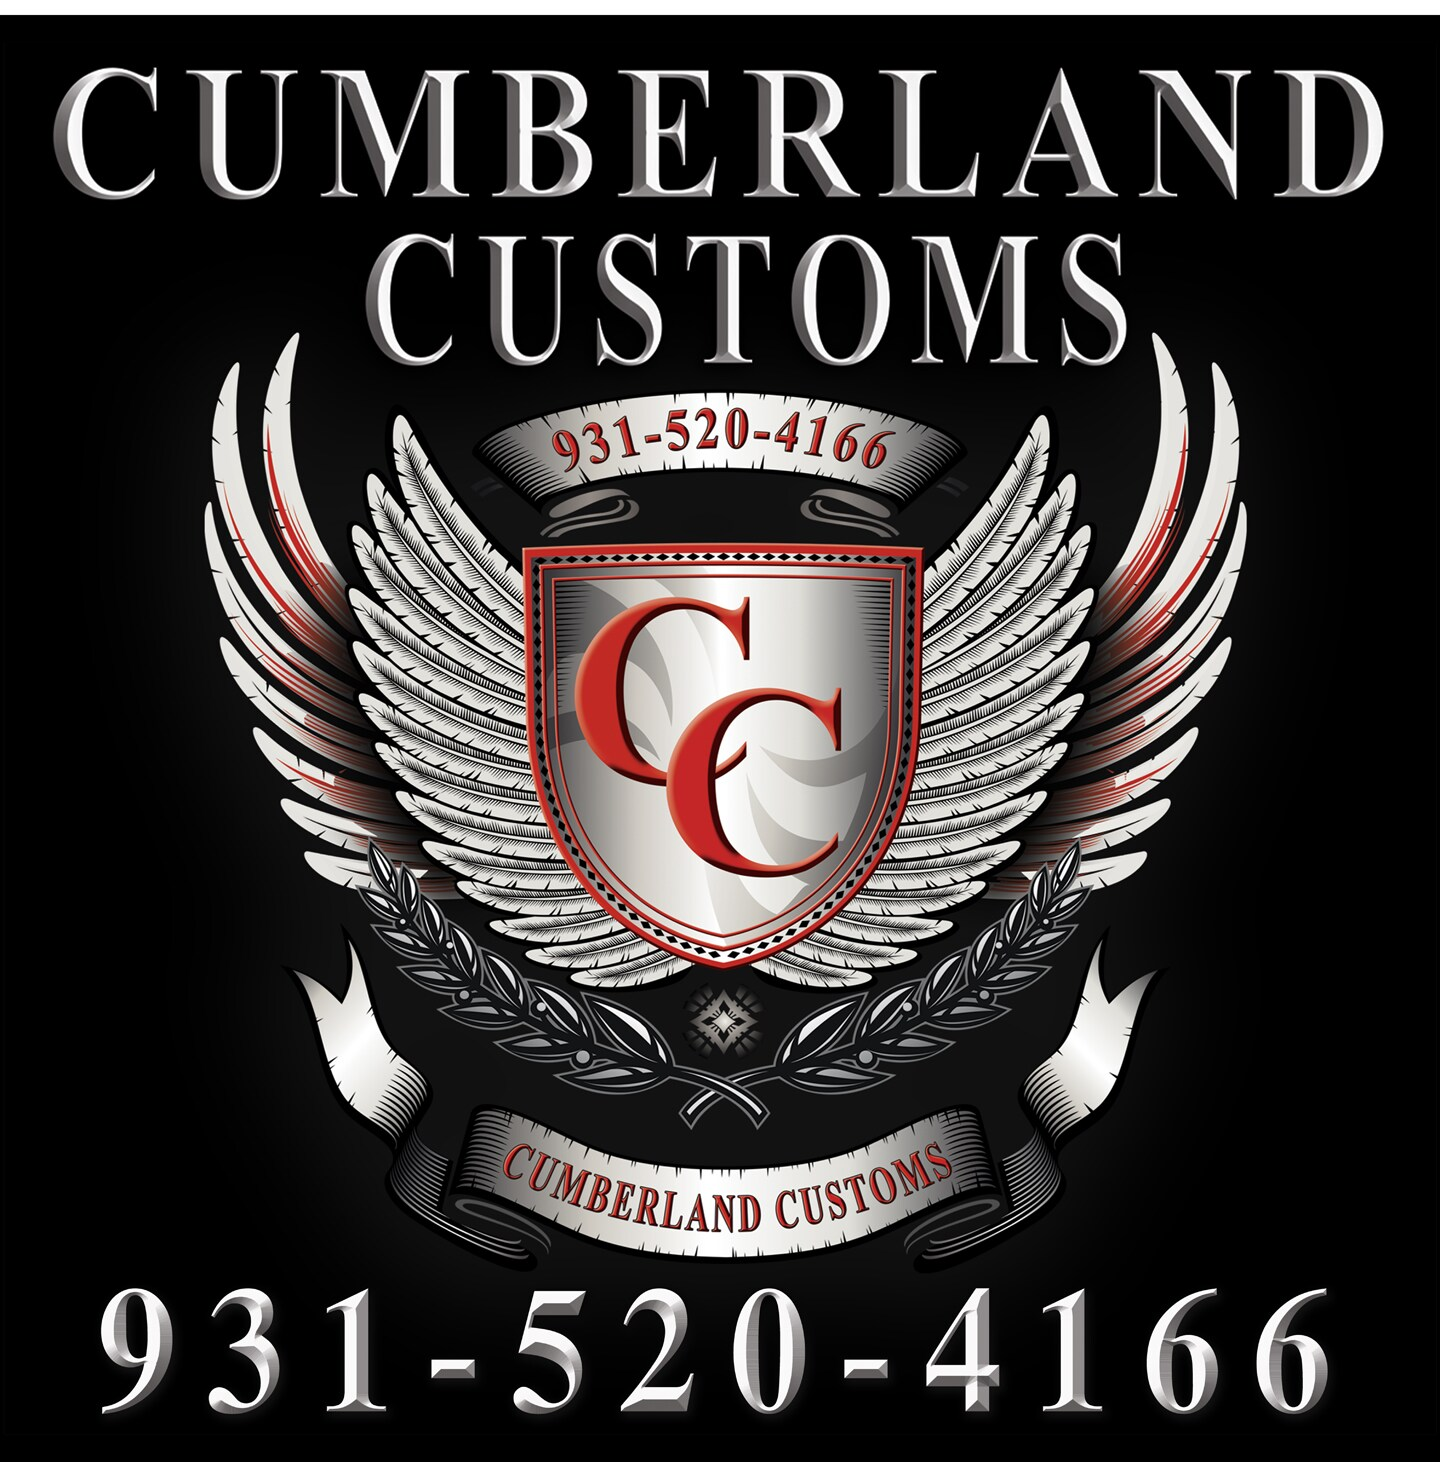 Cumberland Customs and Accessories